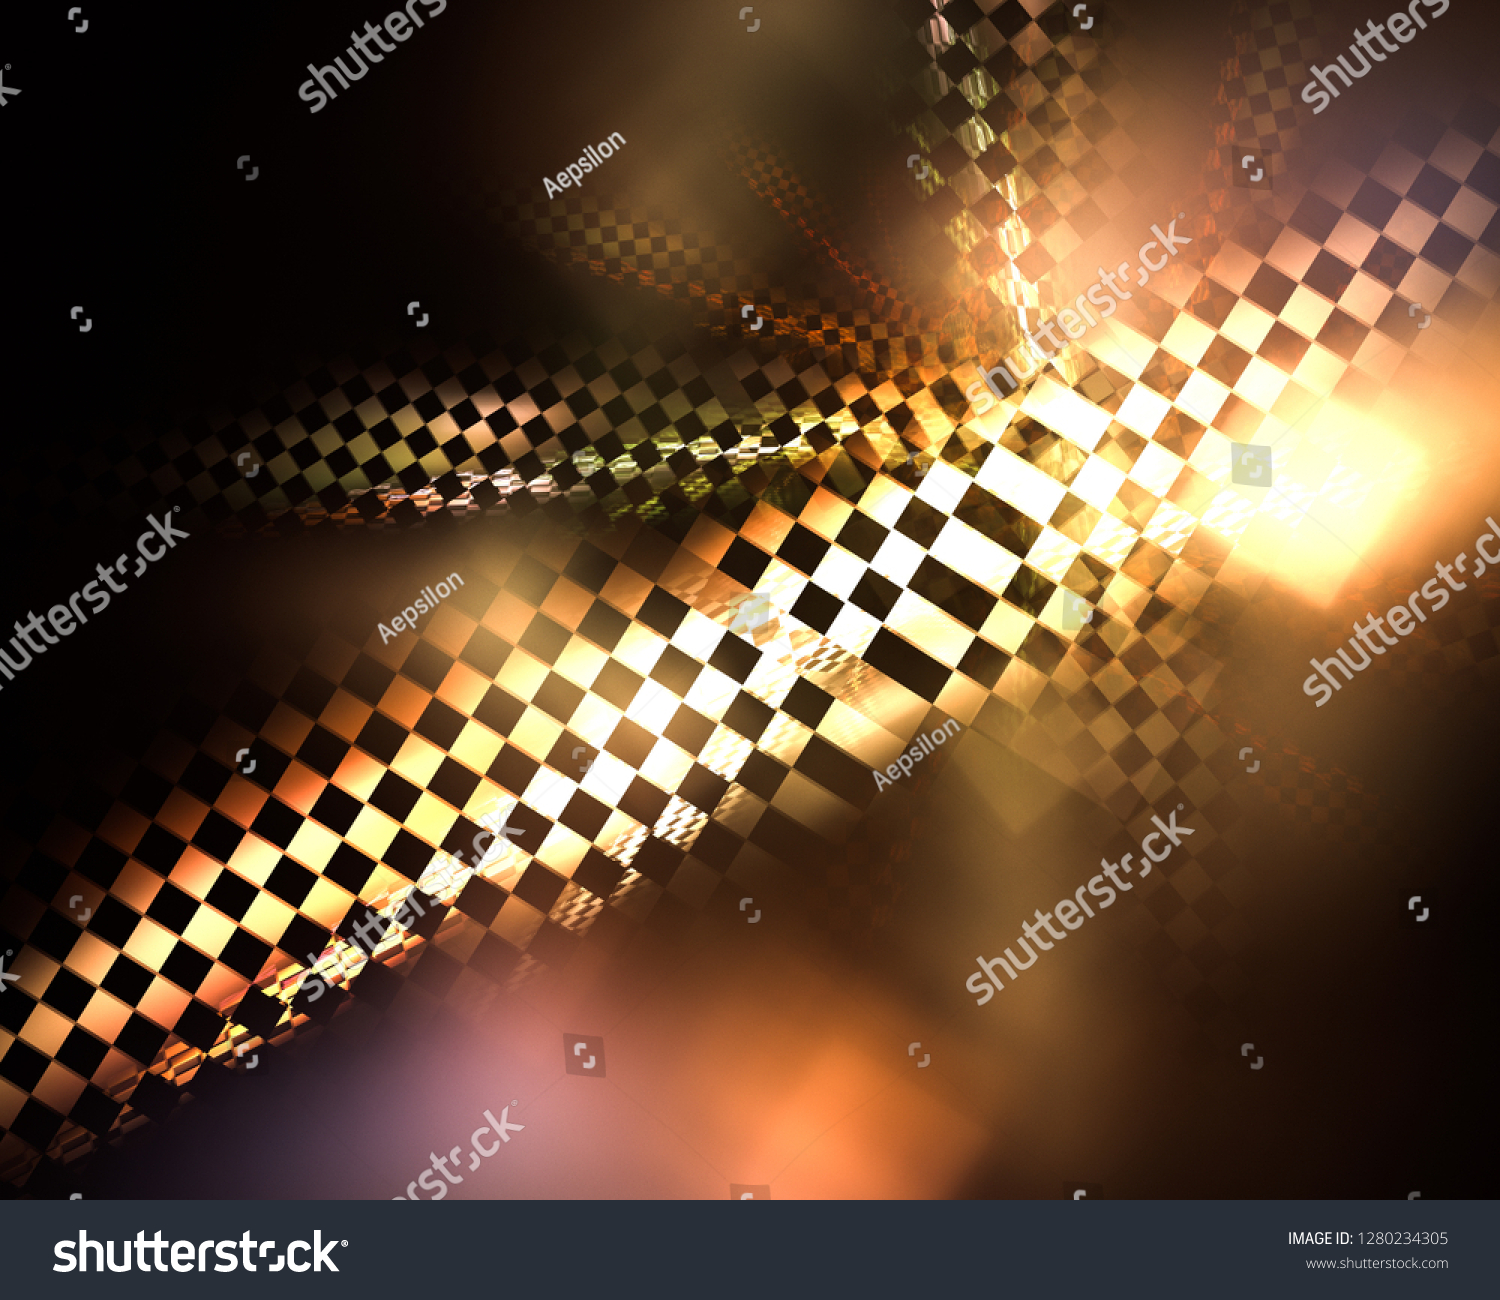 Racing Abstract Background Contains Elements Checkered Stock Illustration  1280234305